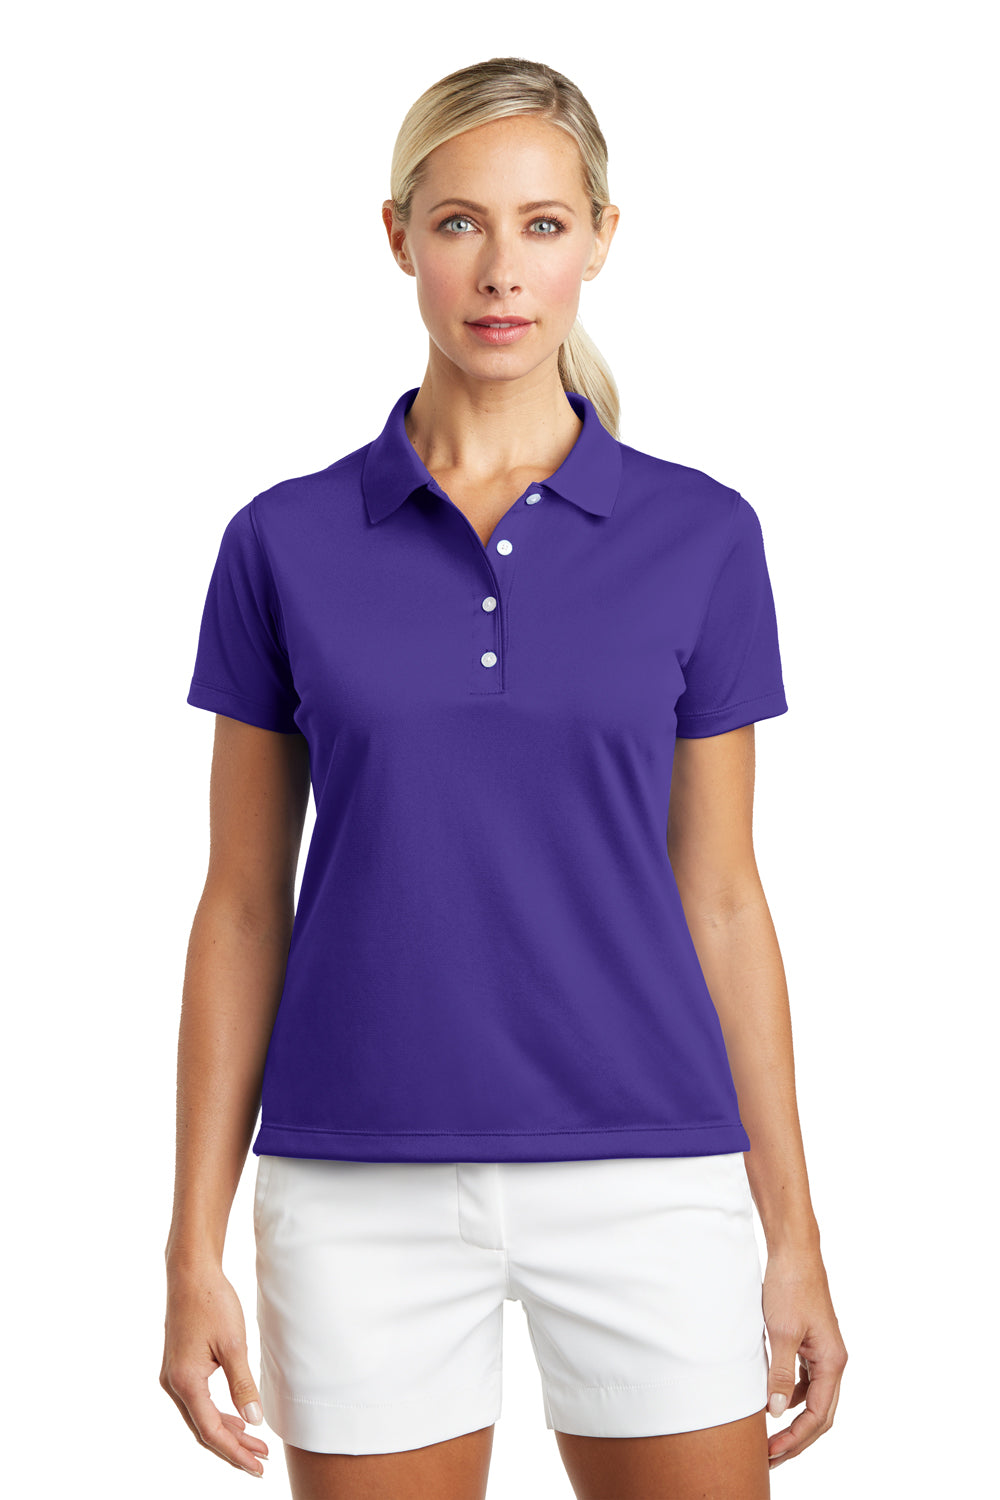 Nike 203697 Womens Tech Basic Dri-Fit Moisture Wicking Short Sleeve Polo Shirt Purple Front